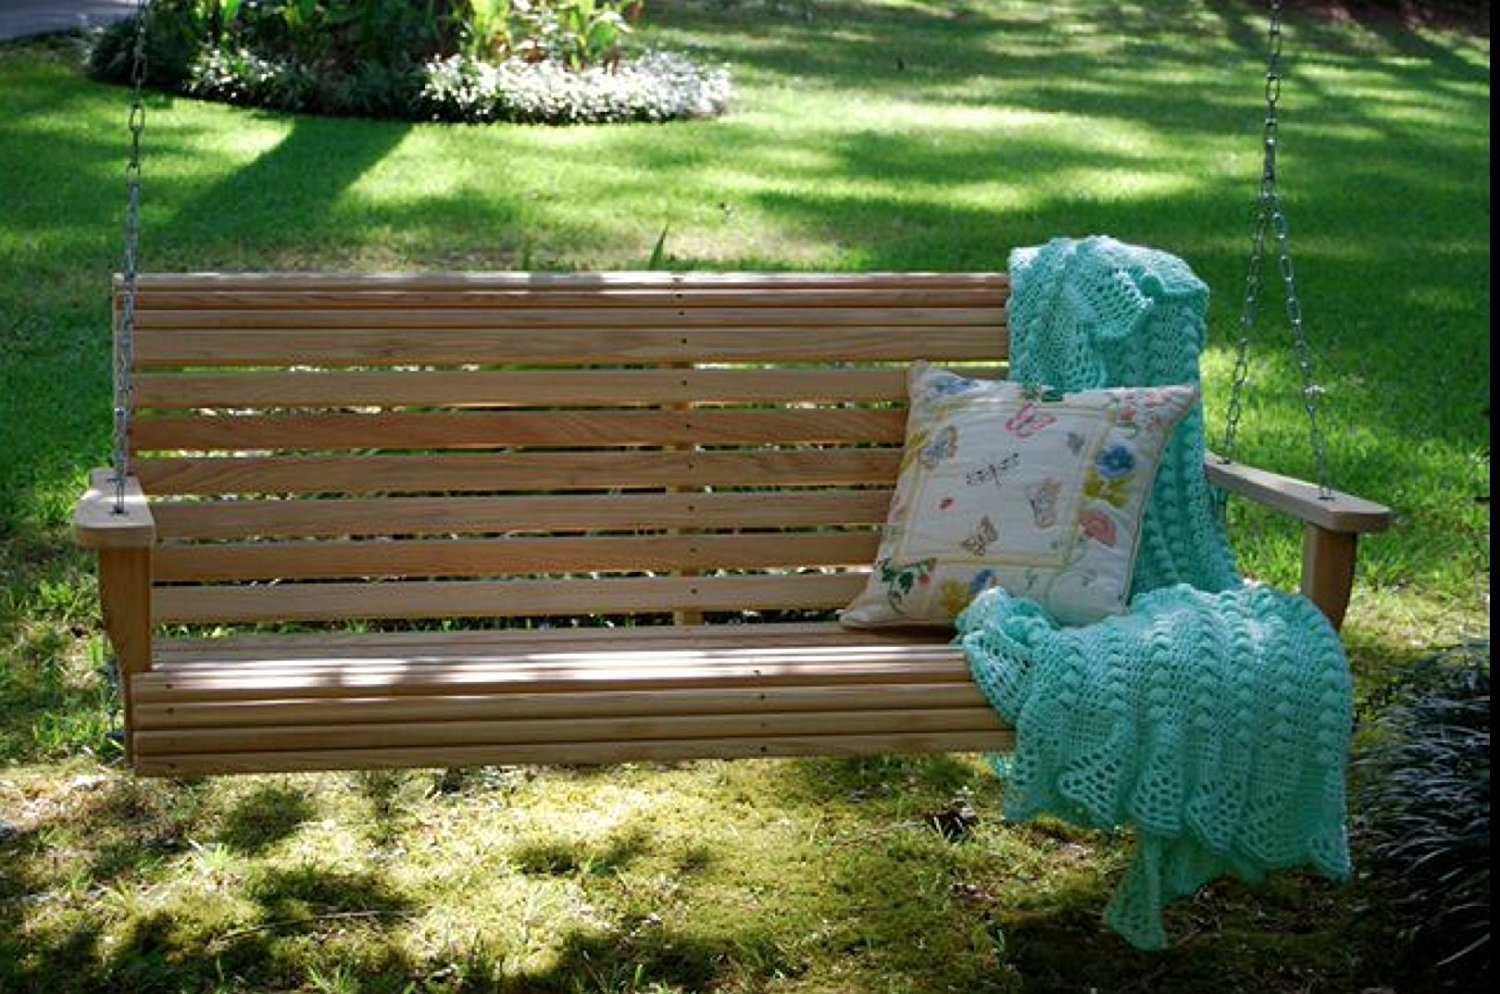 Unfinished wooden rollback porch swing